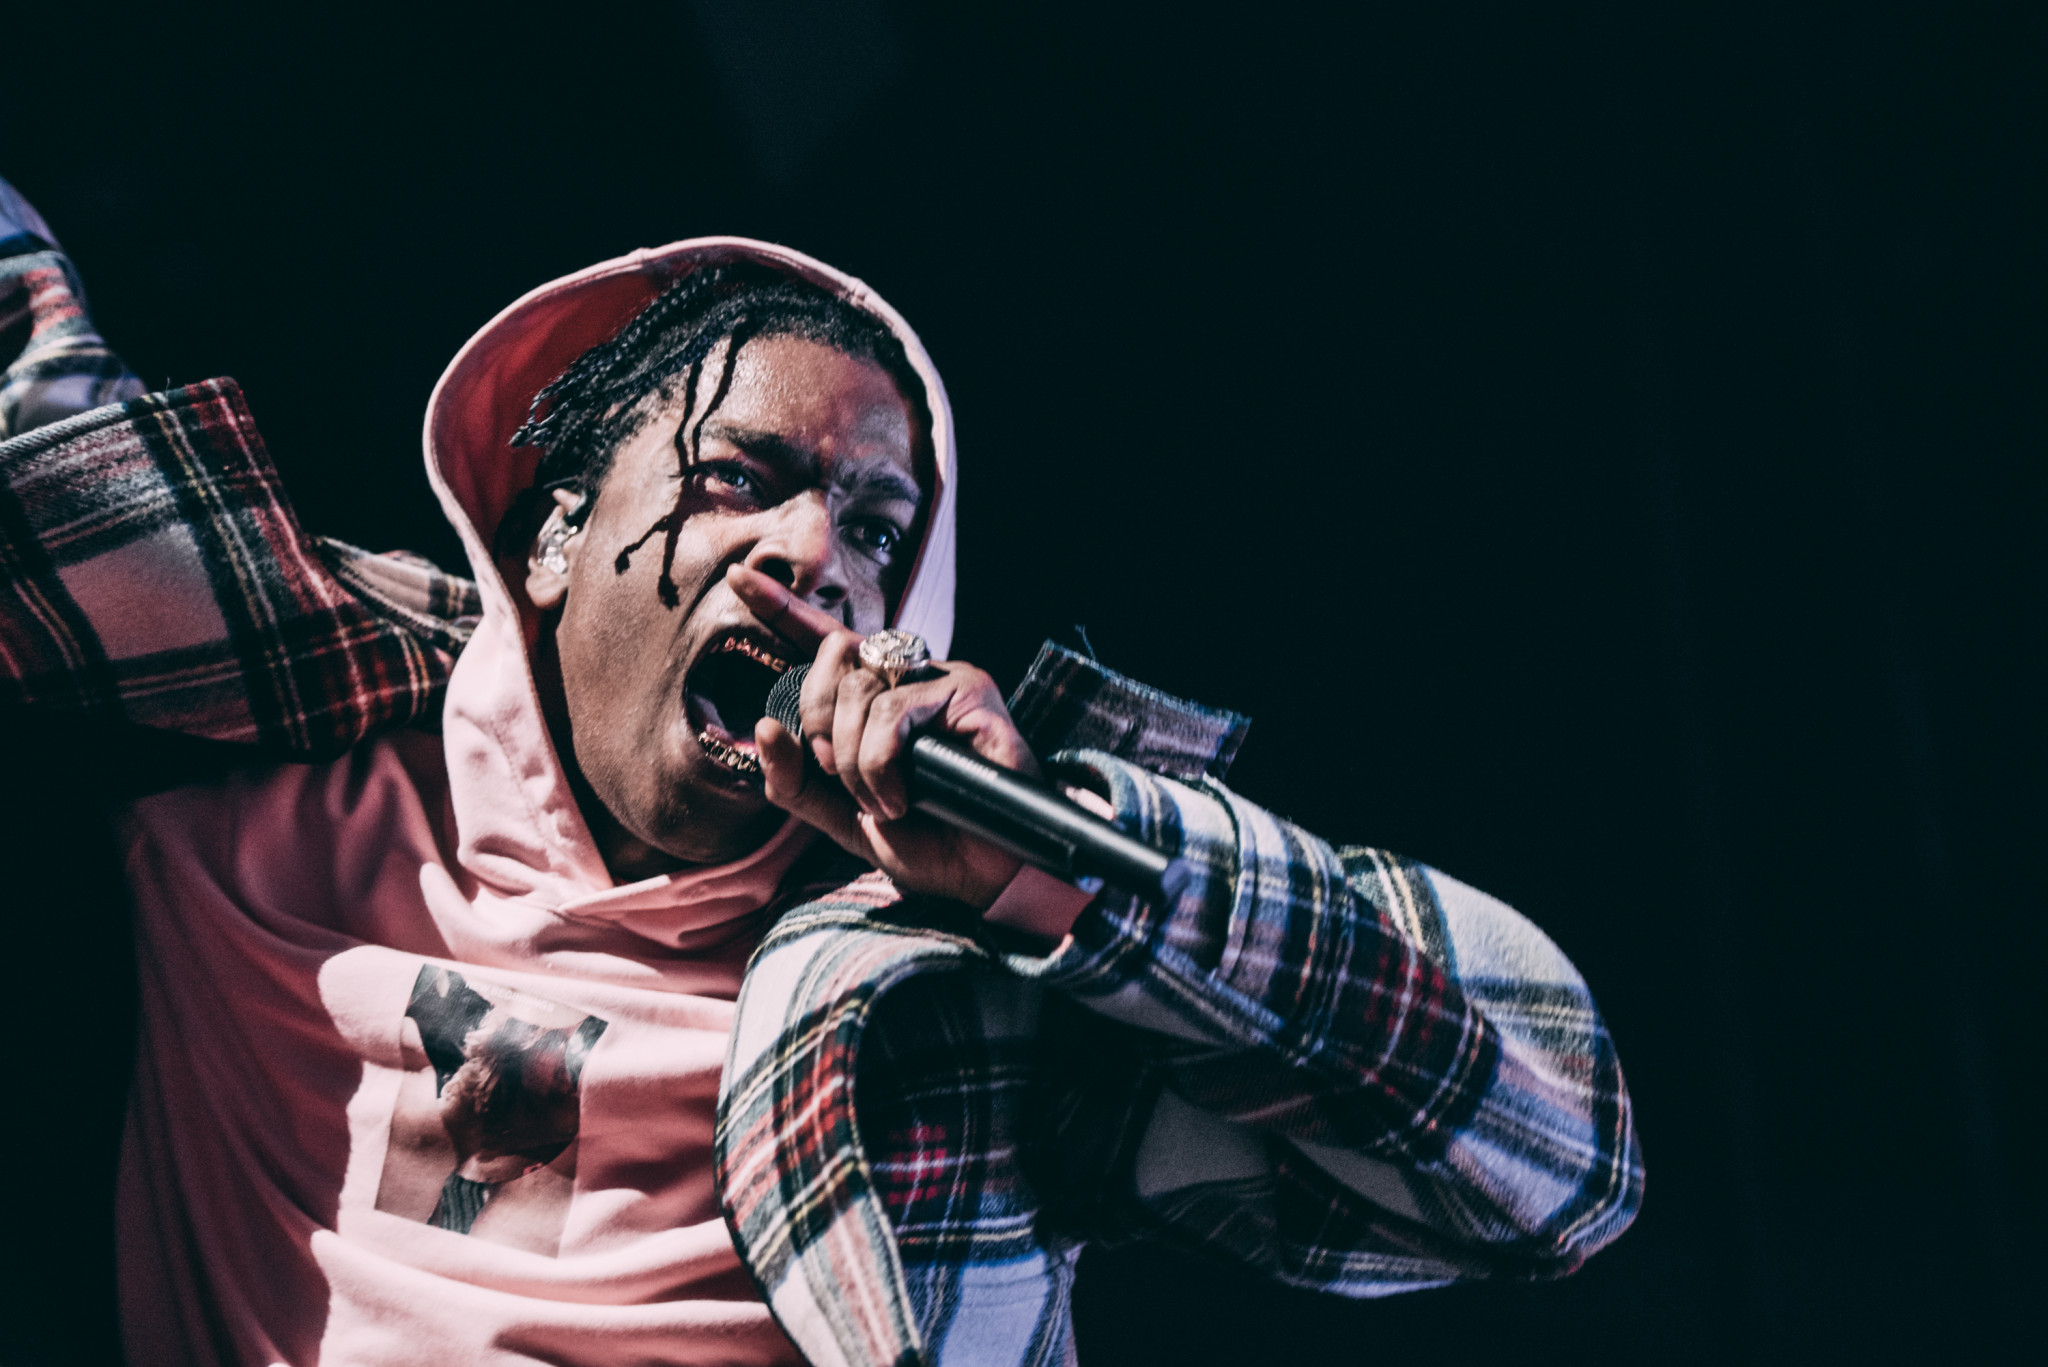 ASAP Rocky Vcb_ Brandon Artis Photography-13